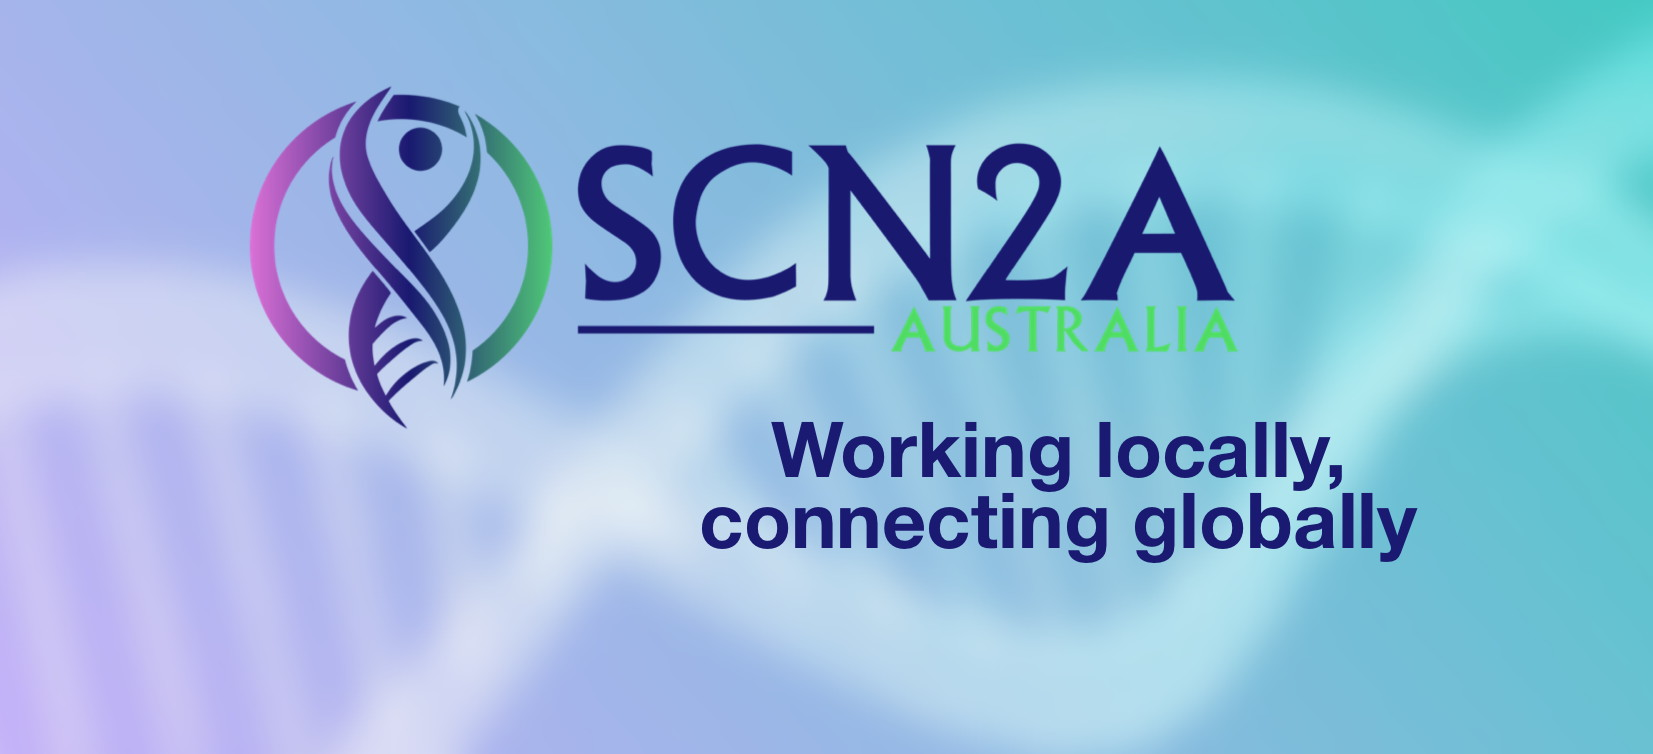 Welcome to SCN2A Australia